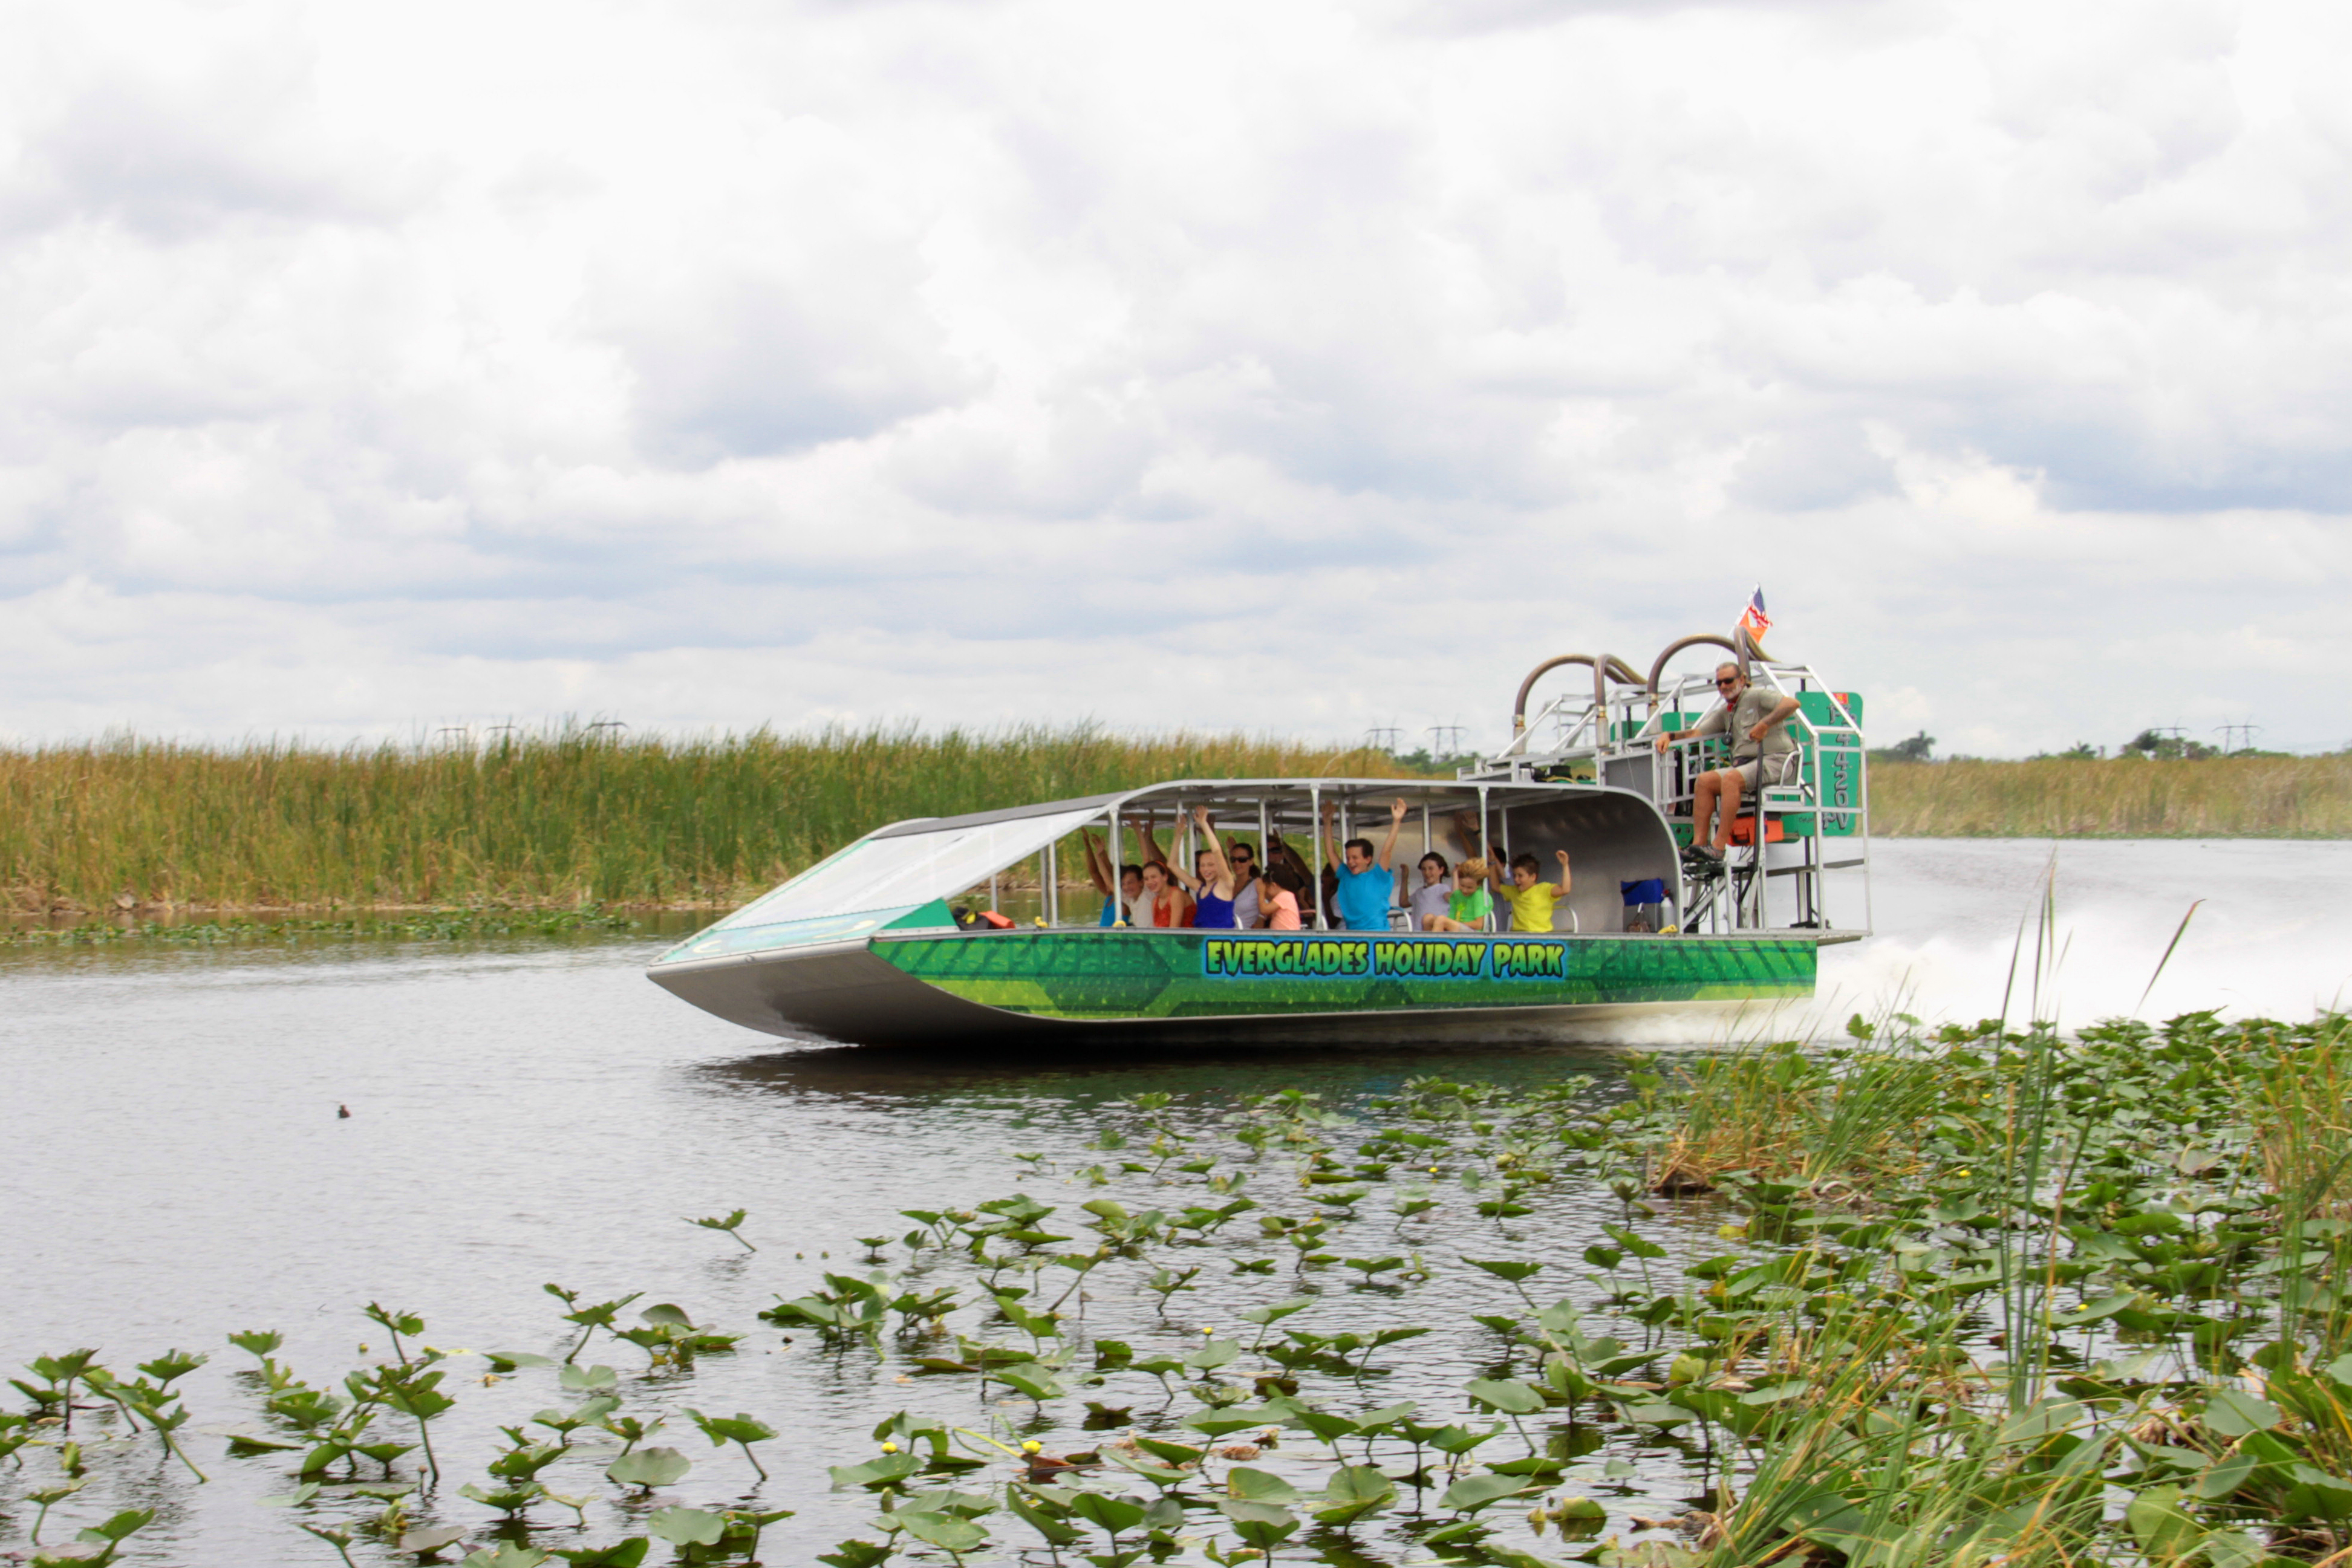 a review of a trip to the everglades holiday park Miami everglades resort, miami, fl, southeast florida: vacation resort guide for miami everglades resort featuring deals, packages, reviews, photos, video, rates, number of rooms, amenities, activities and much more.